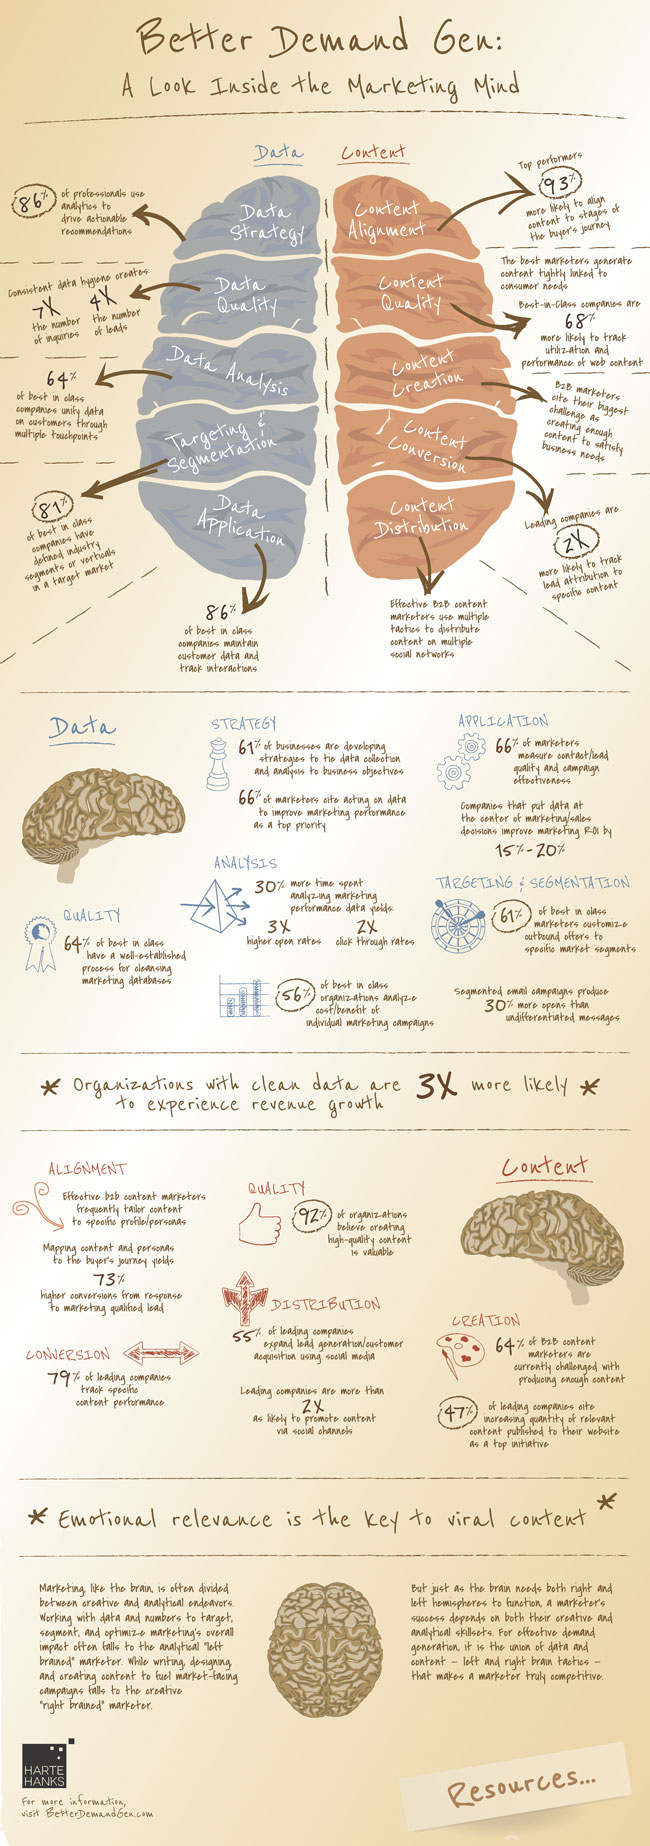 The Anatomy of an Effective Marketing Brain